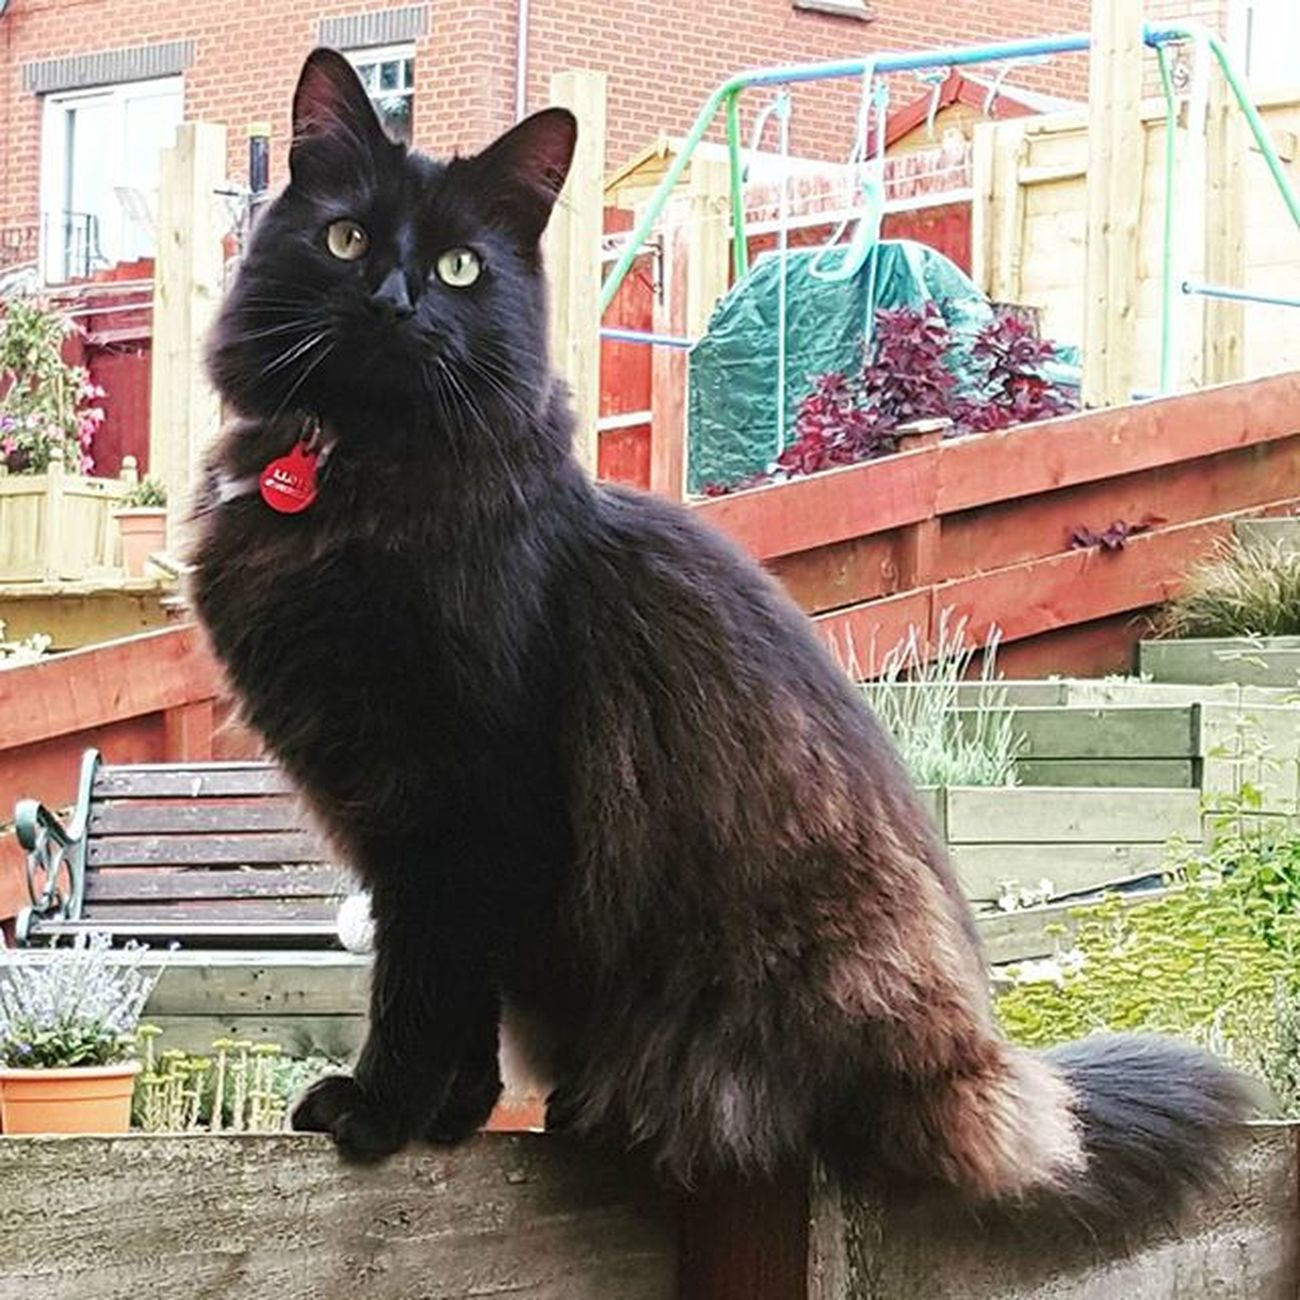 Our wee handsome man. BLackCat Handsomecat Cat Pets Pets Madcat Lovecats Love His name is Dexter